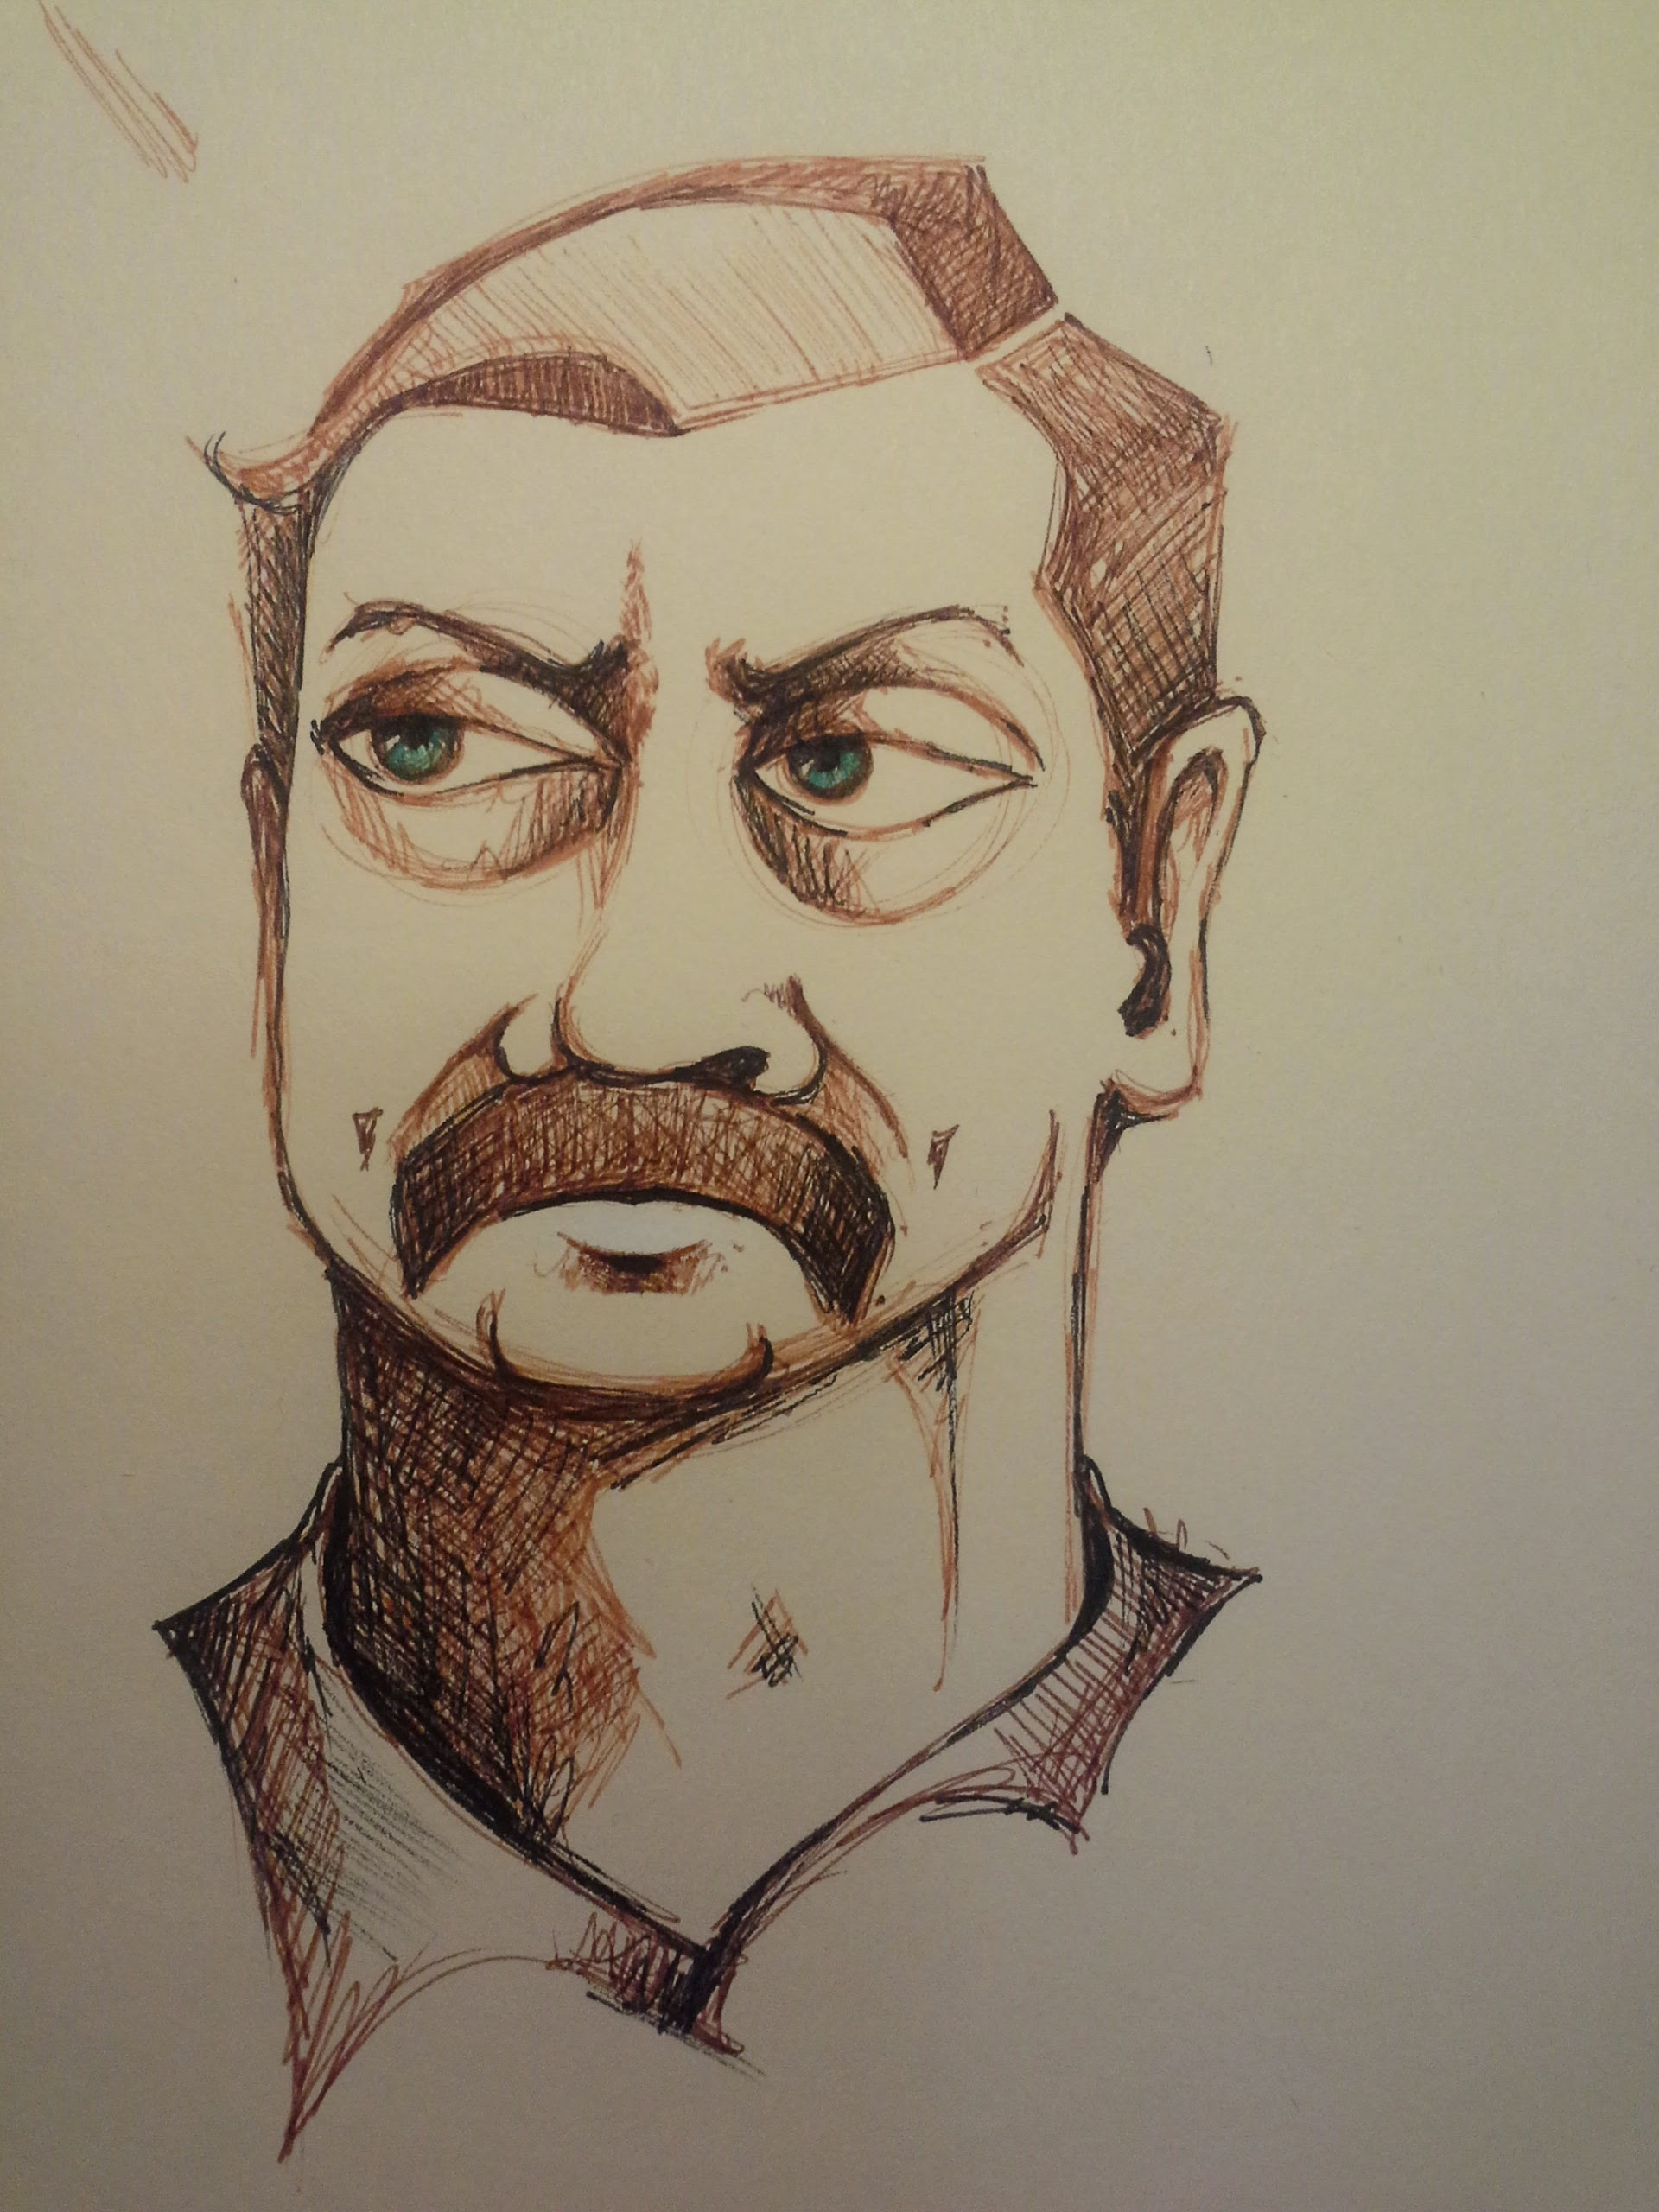 Ron Swanson. TV watching, marker